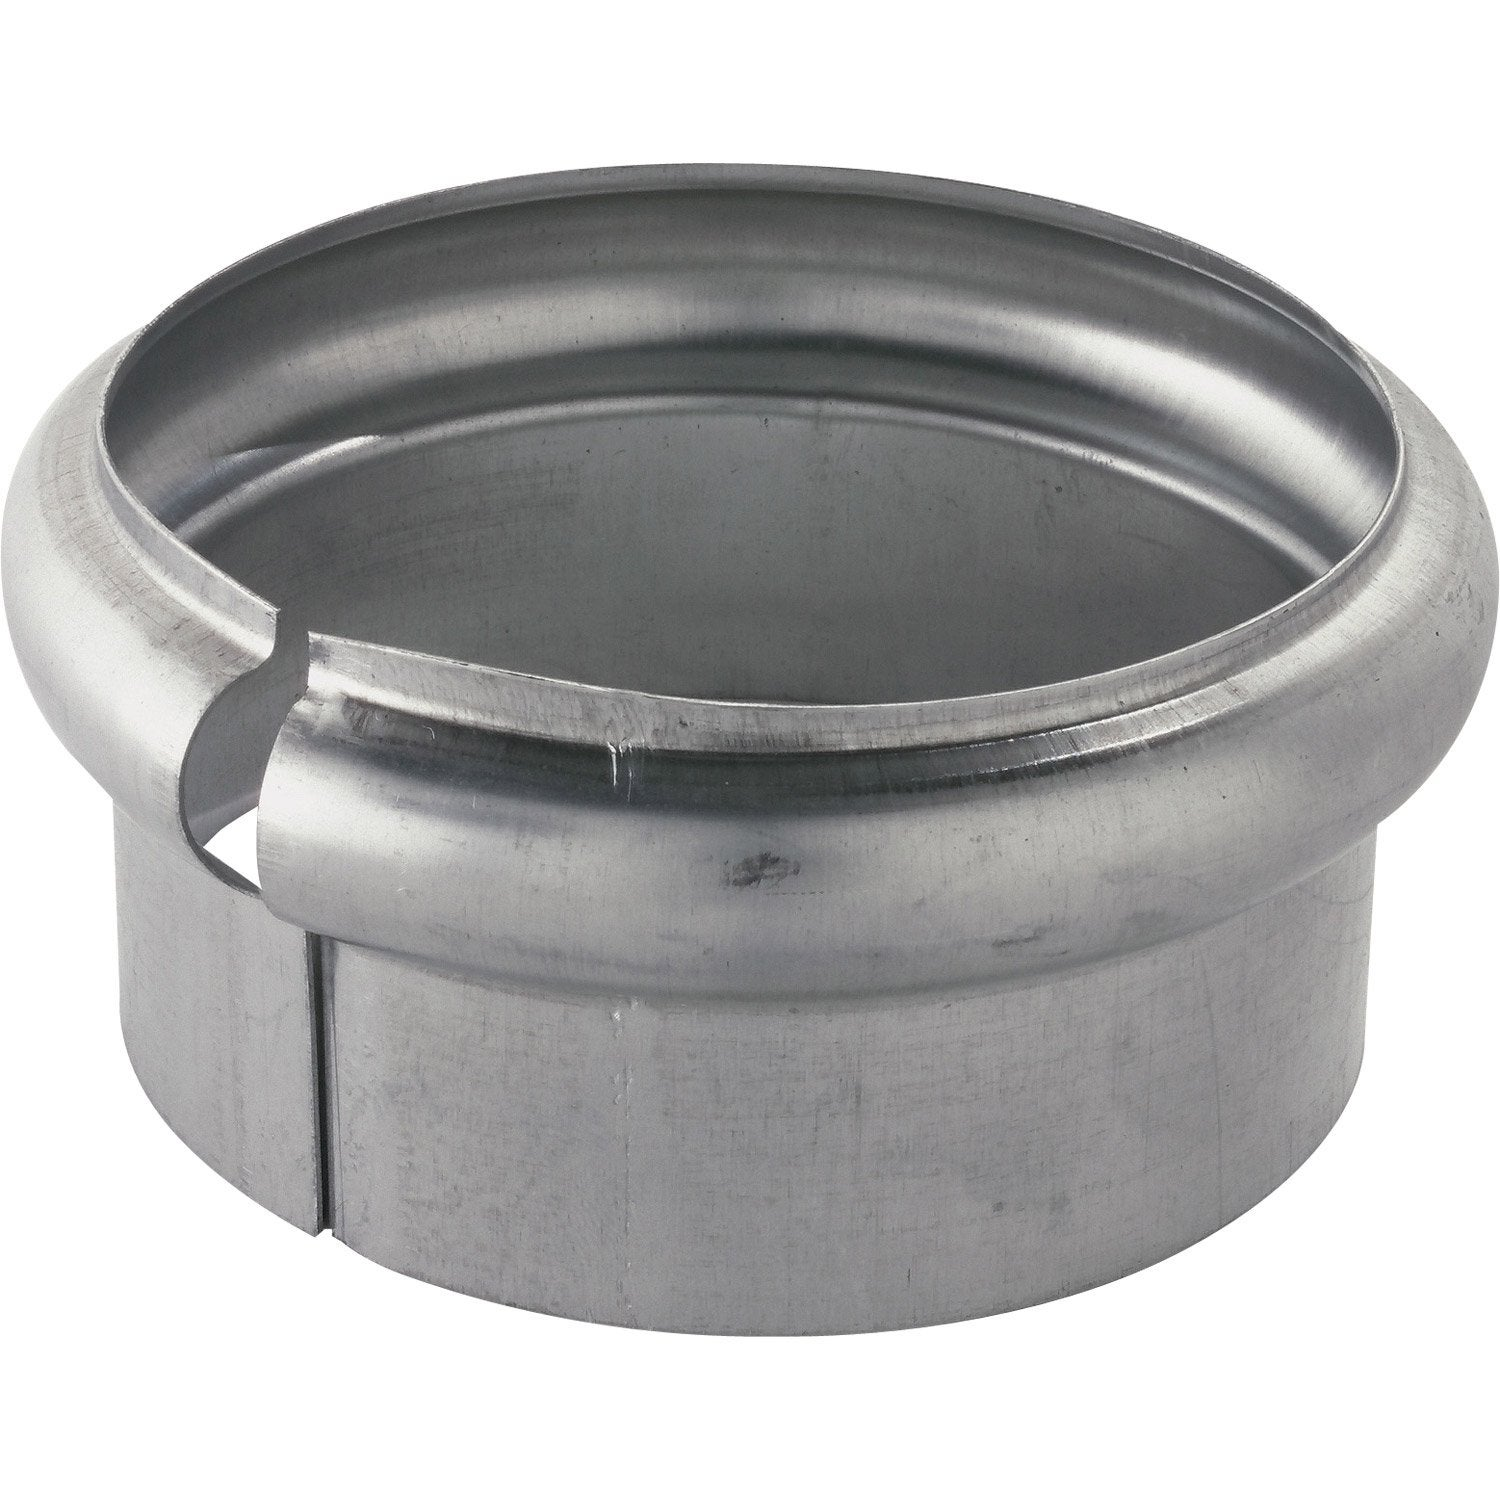 bague simple extensible zinc gris scover plus diam.100 mm | leroy merlin